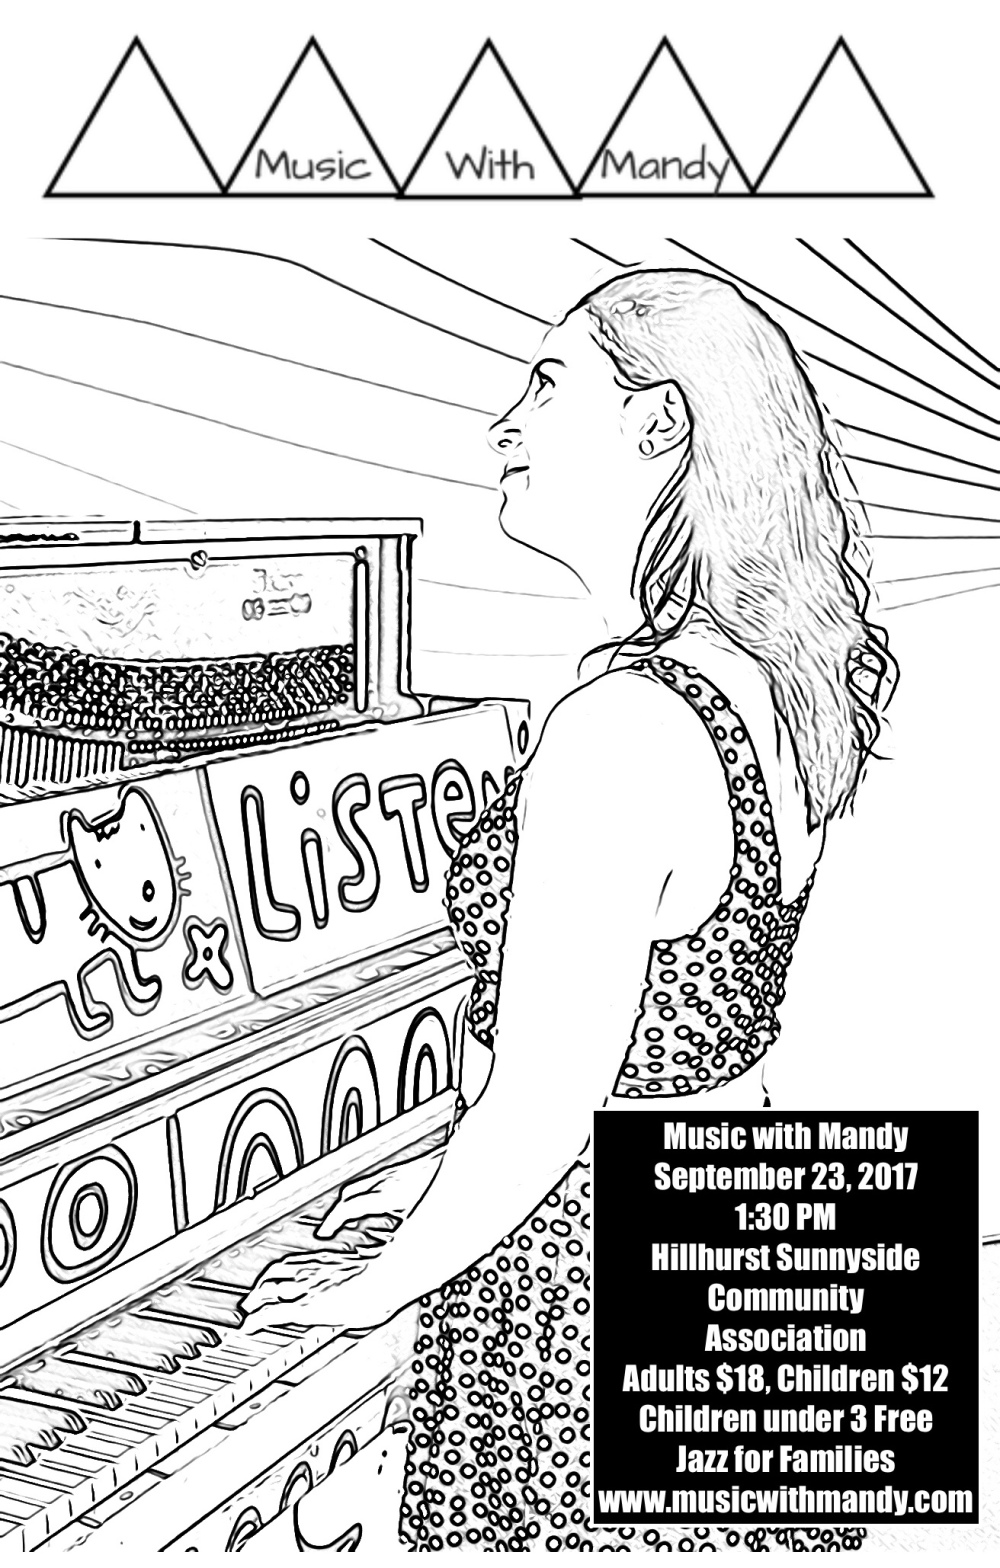 enter the colouring contest to win tickets to our september 23 show